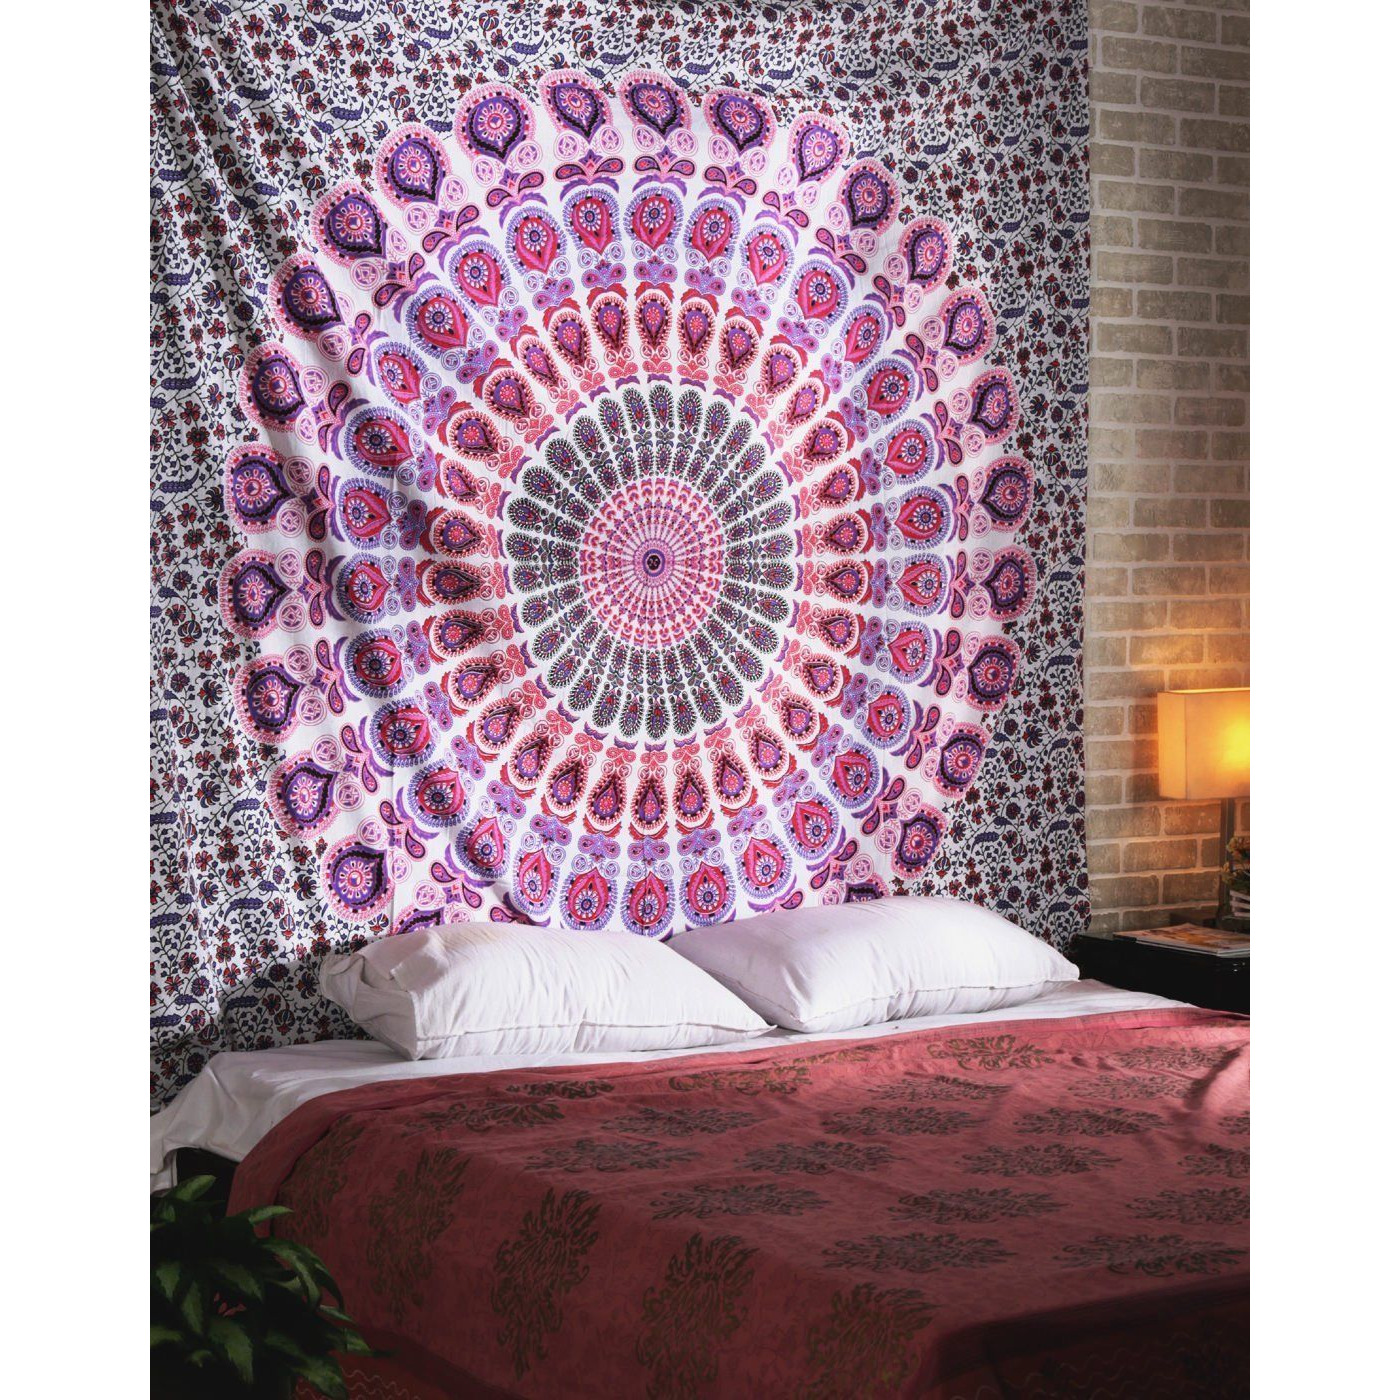 Indian Queen Mandala Tapestry Wall Hanging Throw